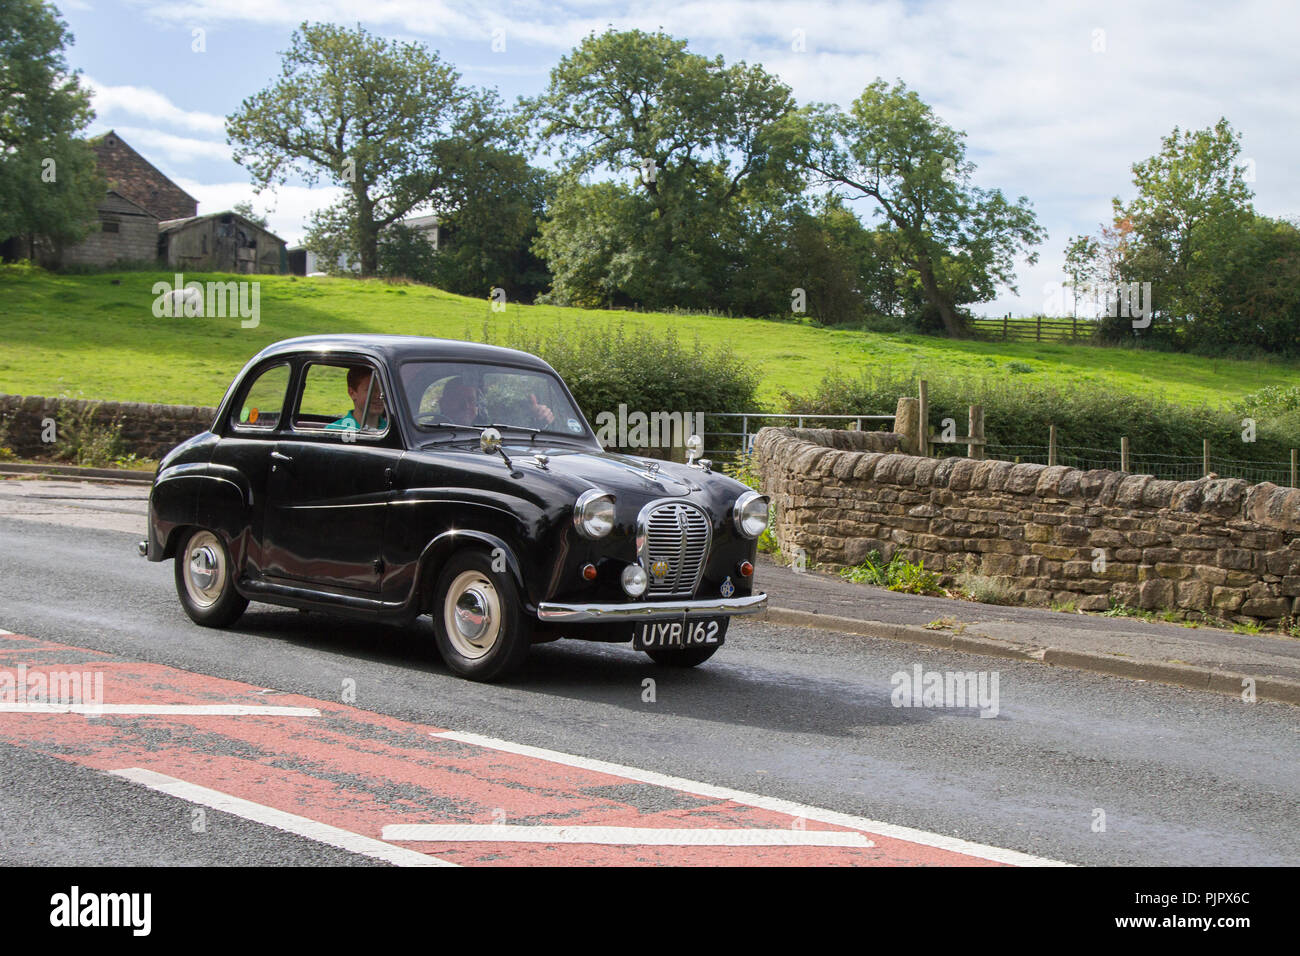 Black 1948 Austin A35 Classic, vintage, veteran, cars of yesteryear, restored collectibles at Hoghton Tower Class Cars Rally, UK - Stock Image